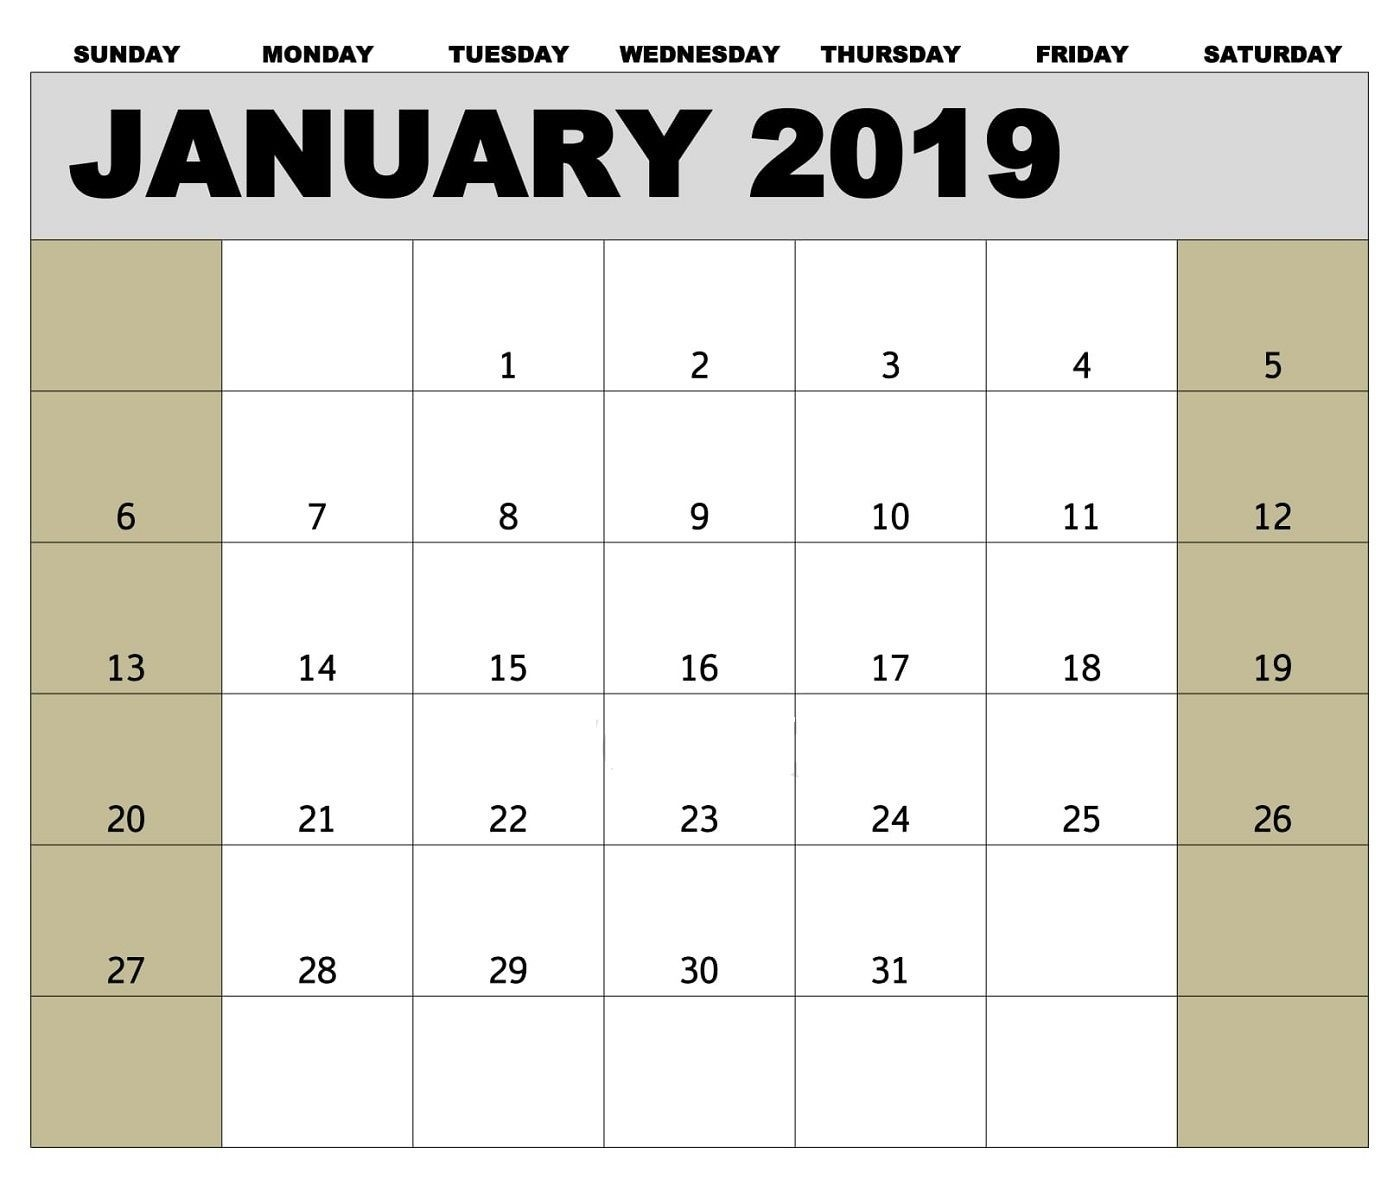 January 2019 Biweekly Payroll Calendar Template For-Bi Weekly Pay Schedule 2020 Template